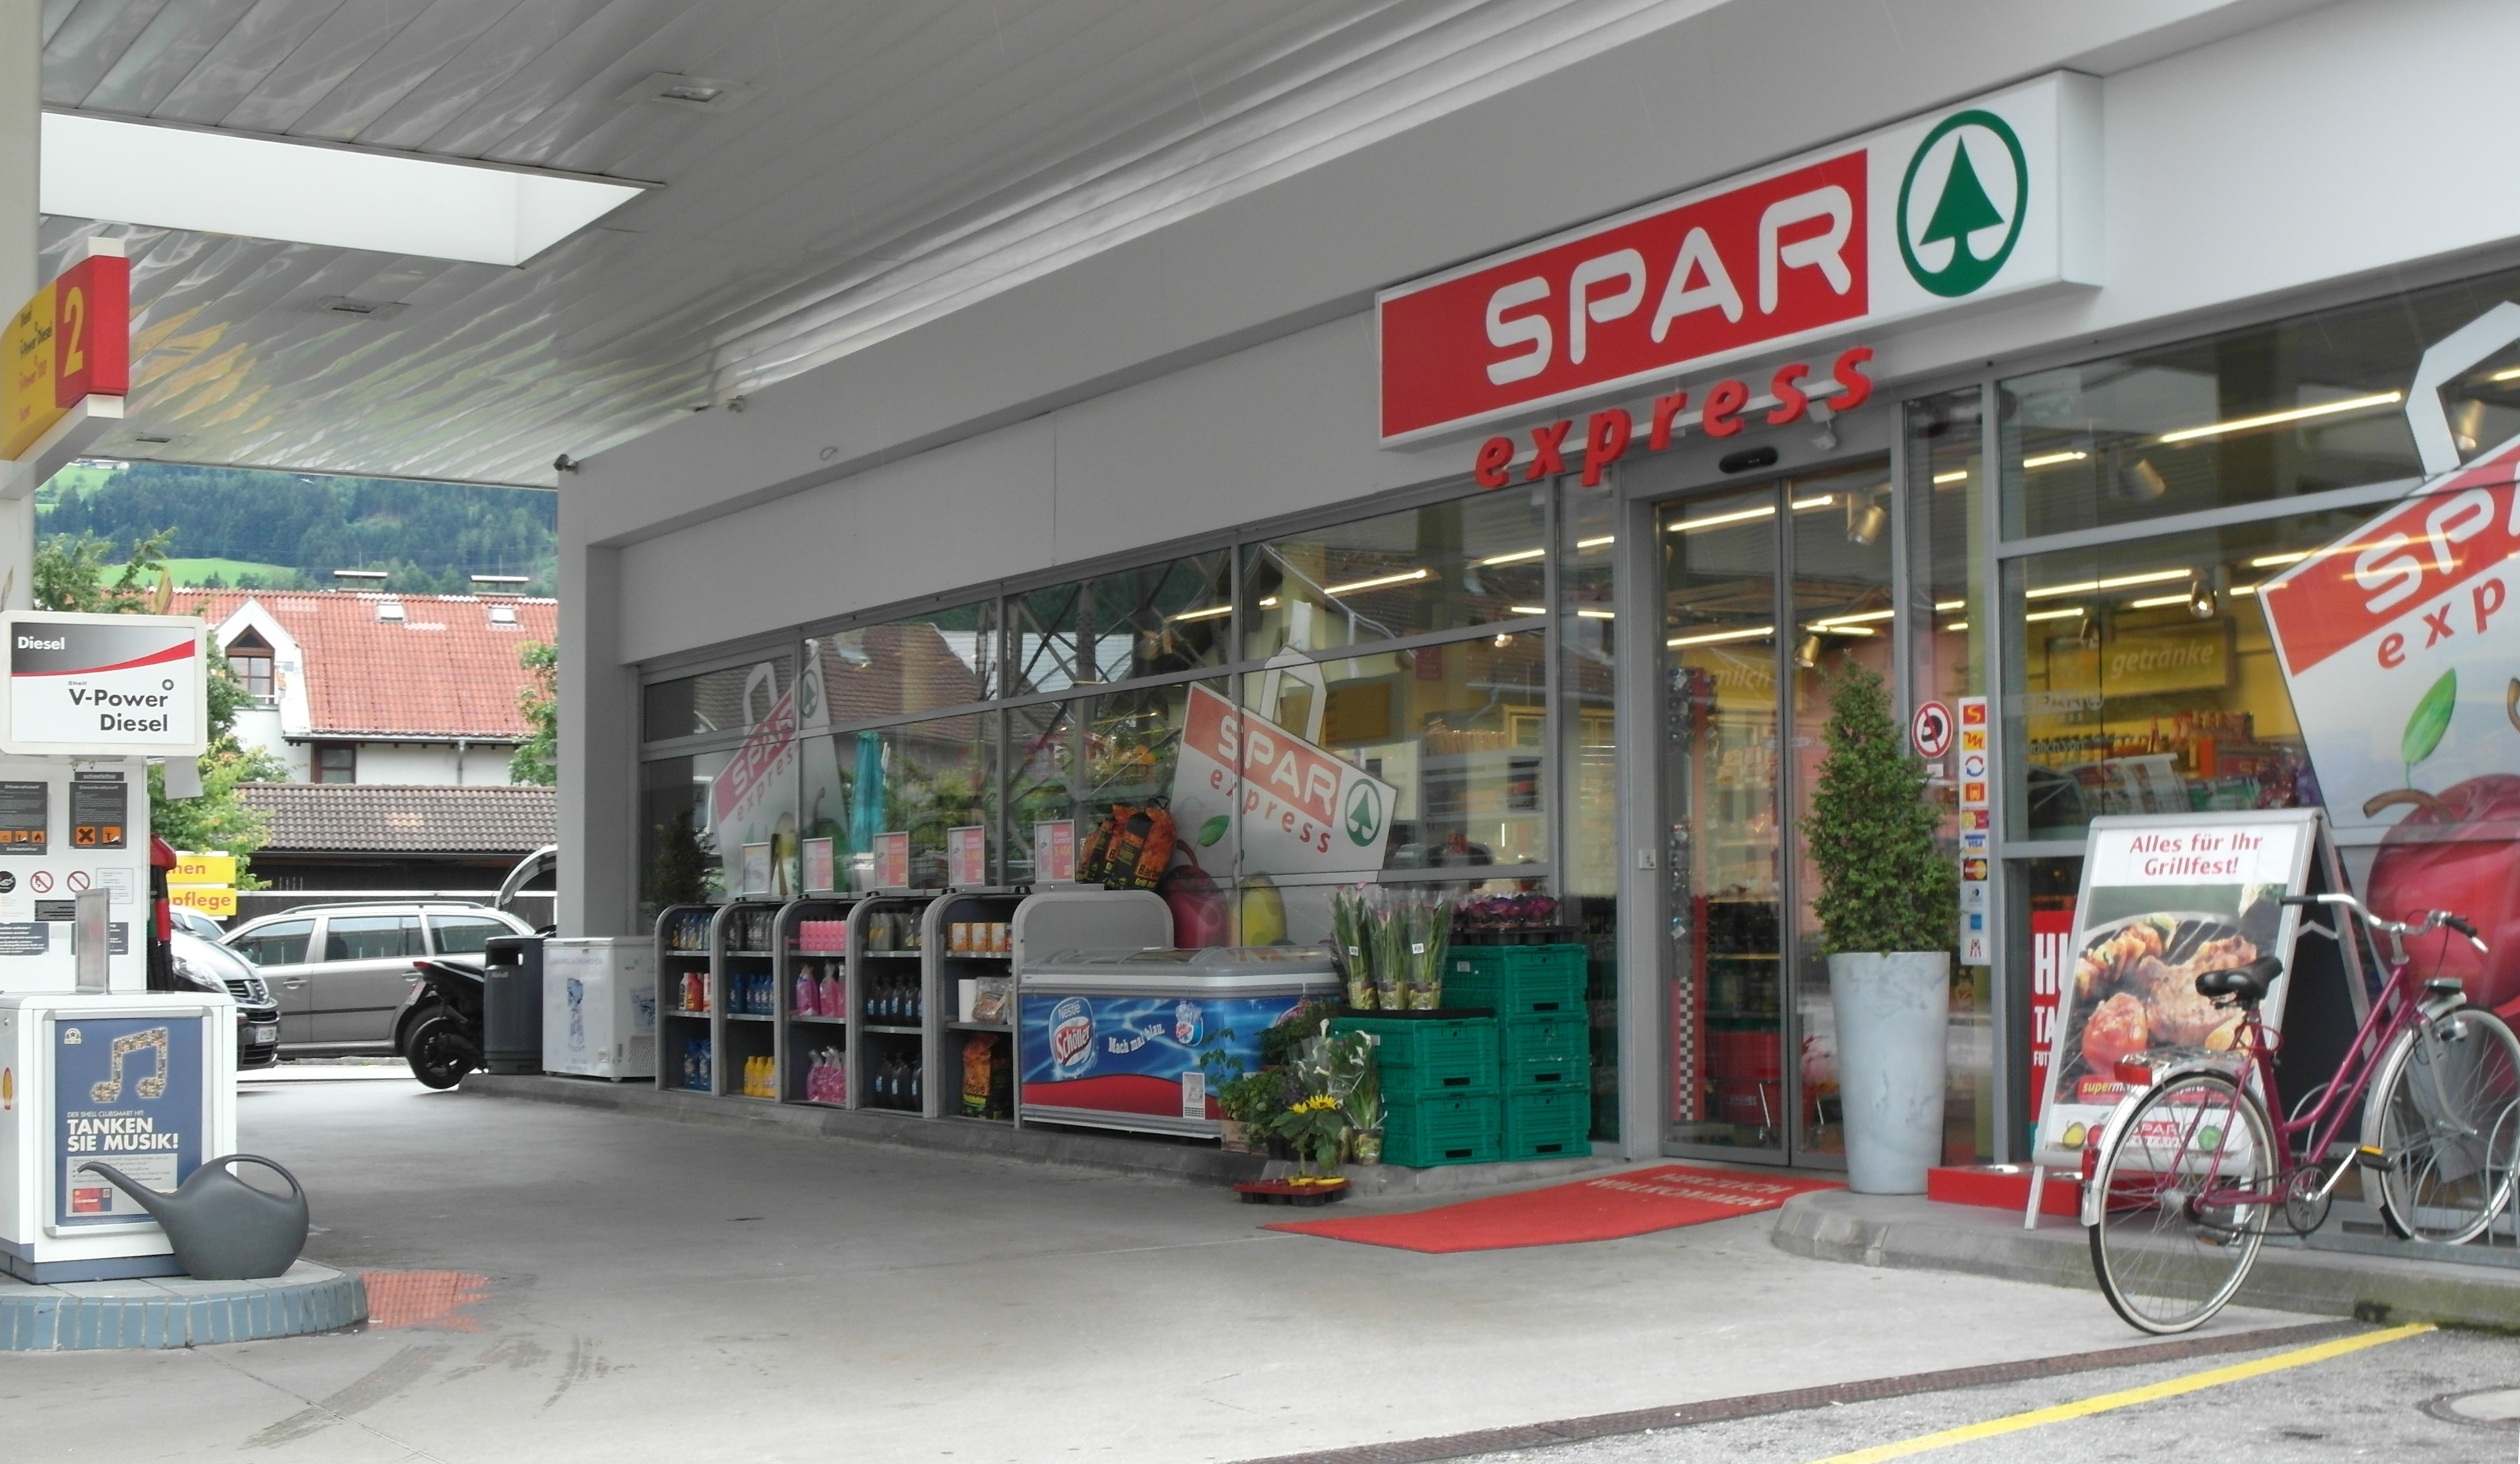 Stor-Age Self Storage - South Africa's leading self storage brand! Whether you're moving home, redecorating or simply trying to maximize your current space, our trained, professional and helpful staff will ensure that you receive the best value and service in South Africa's self storage industry.